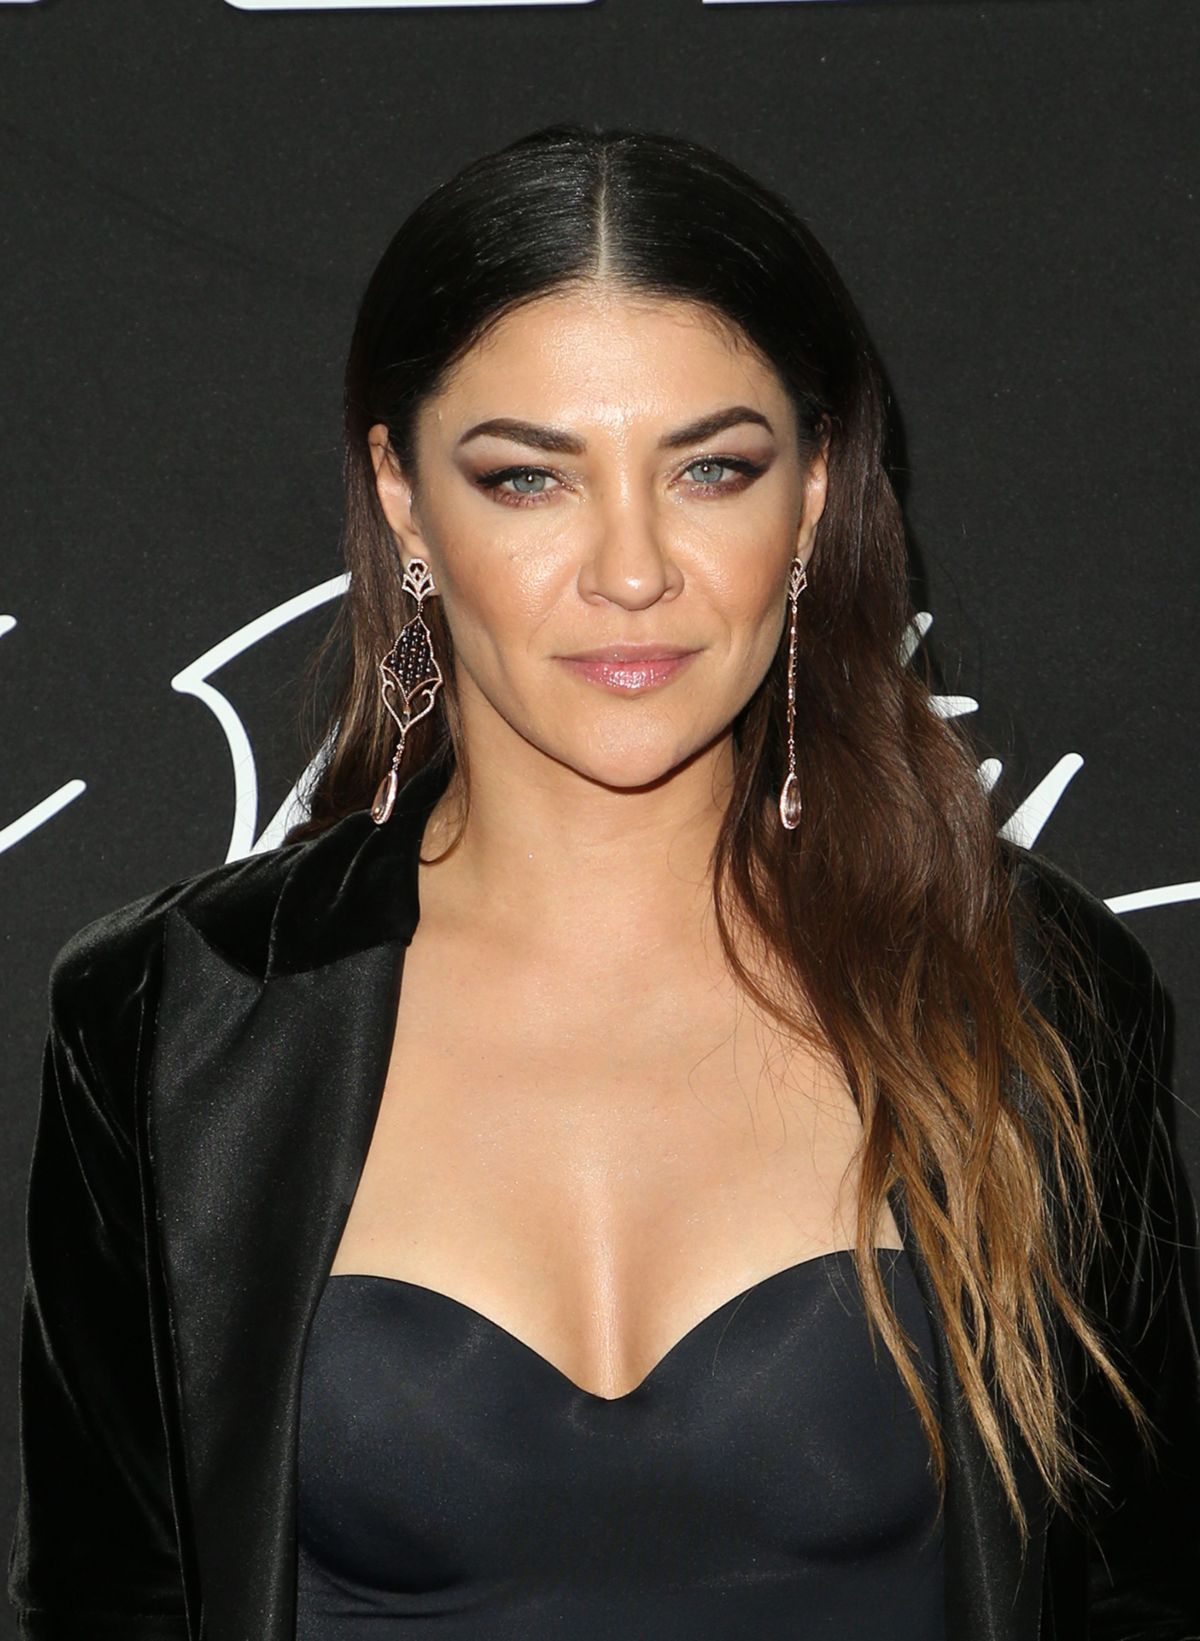 JESSICA SZOHR at Undrafted Premiere in Hollywood 07/11